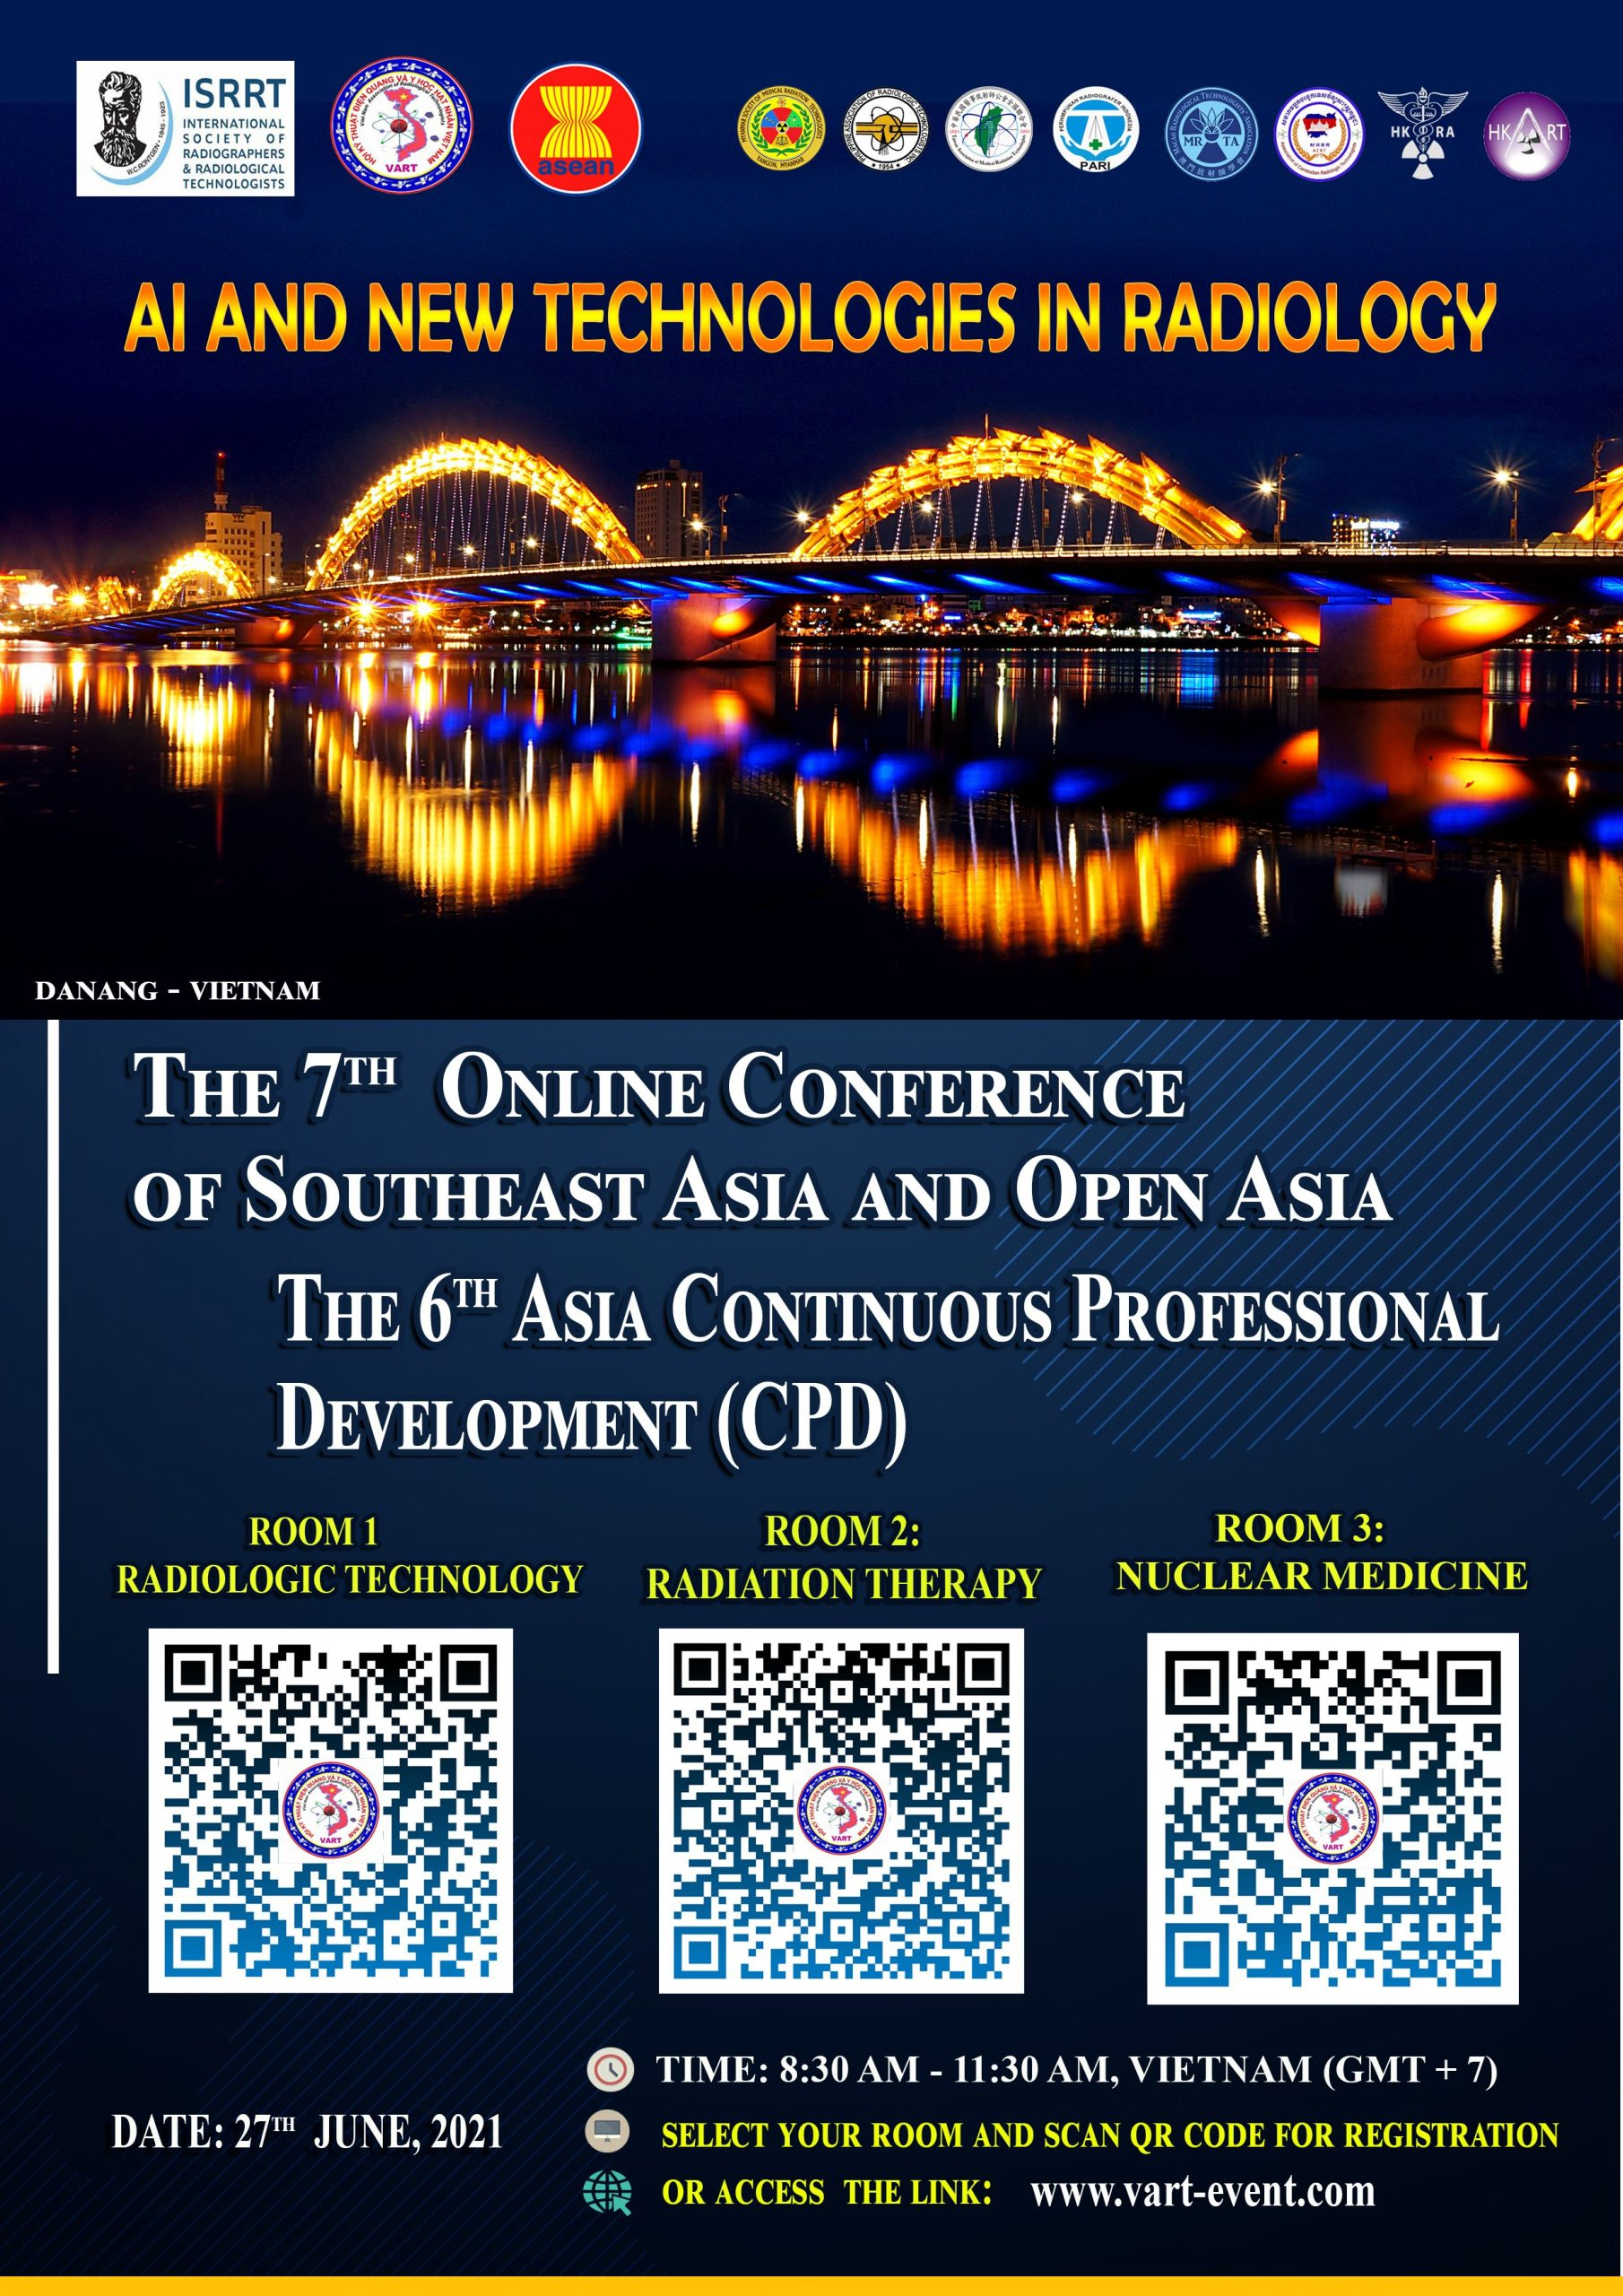 THE 7th ONLINE CONFERENCE OF SOUTHEAST ASIA AND OPEN ASIA  & THE 6th ASIA CONTINUOUS PROFESSIONAL DEVELOPMENT (CPD)